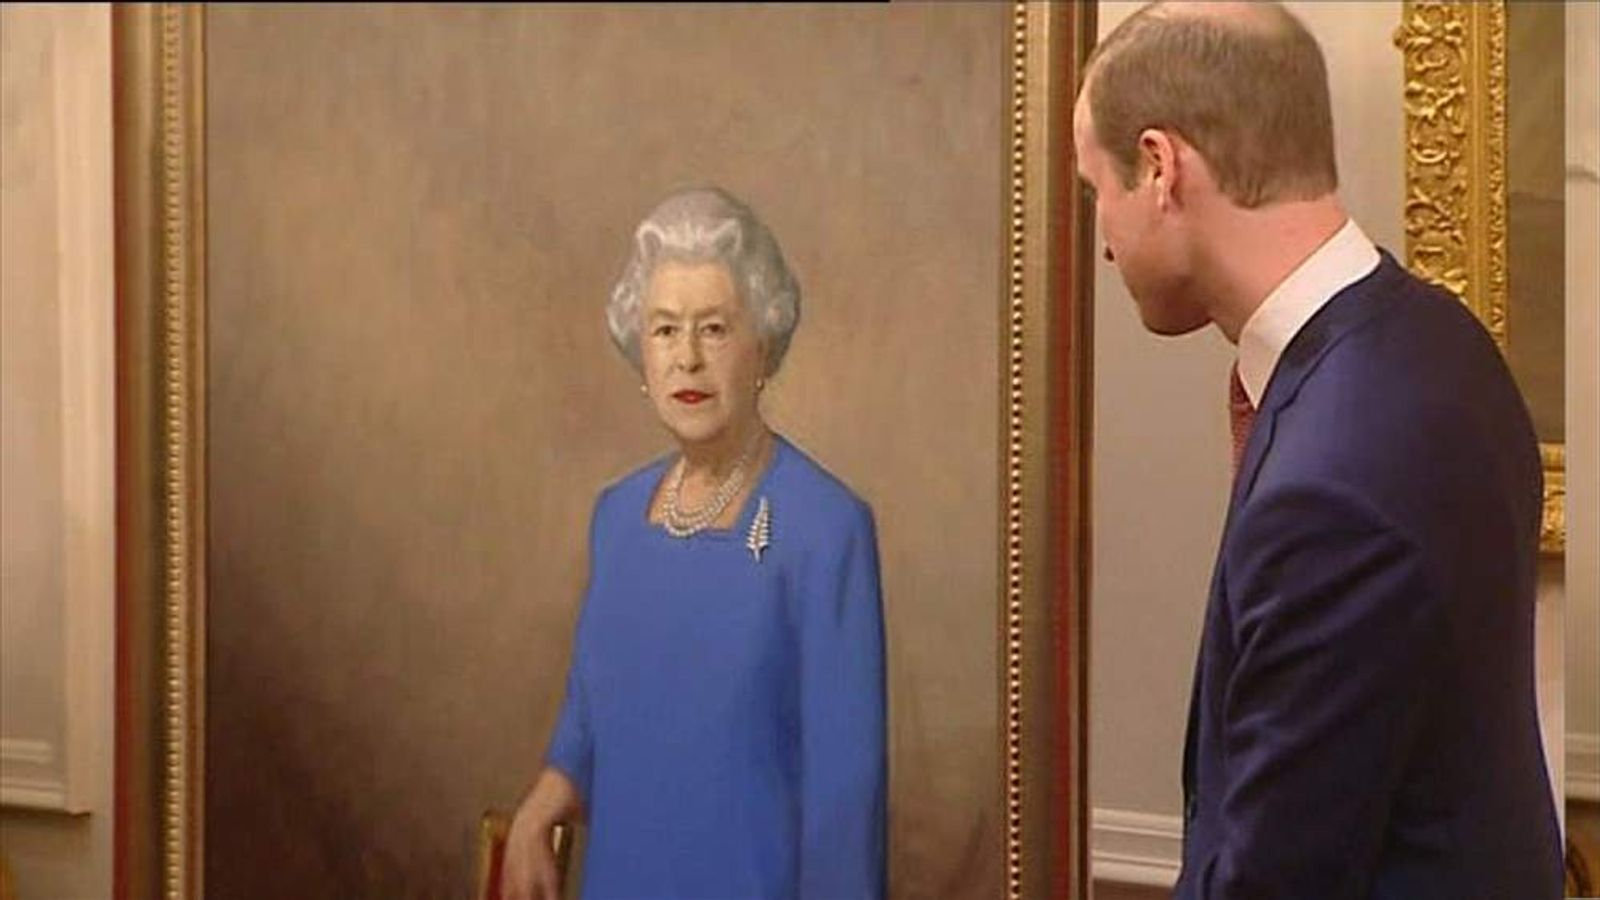 William unveils Queen portrait